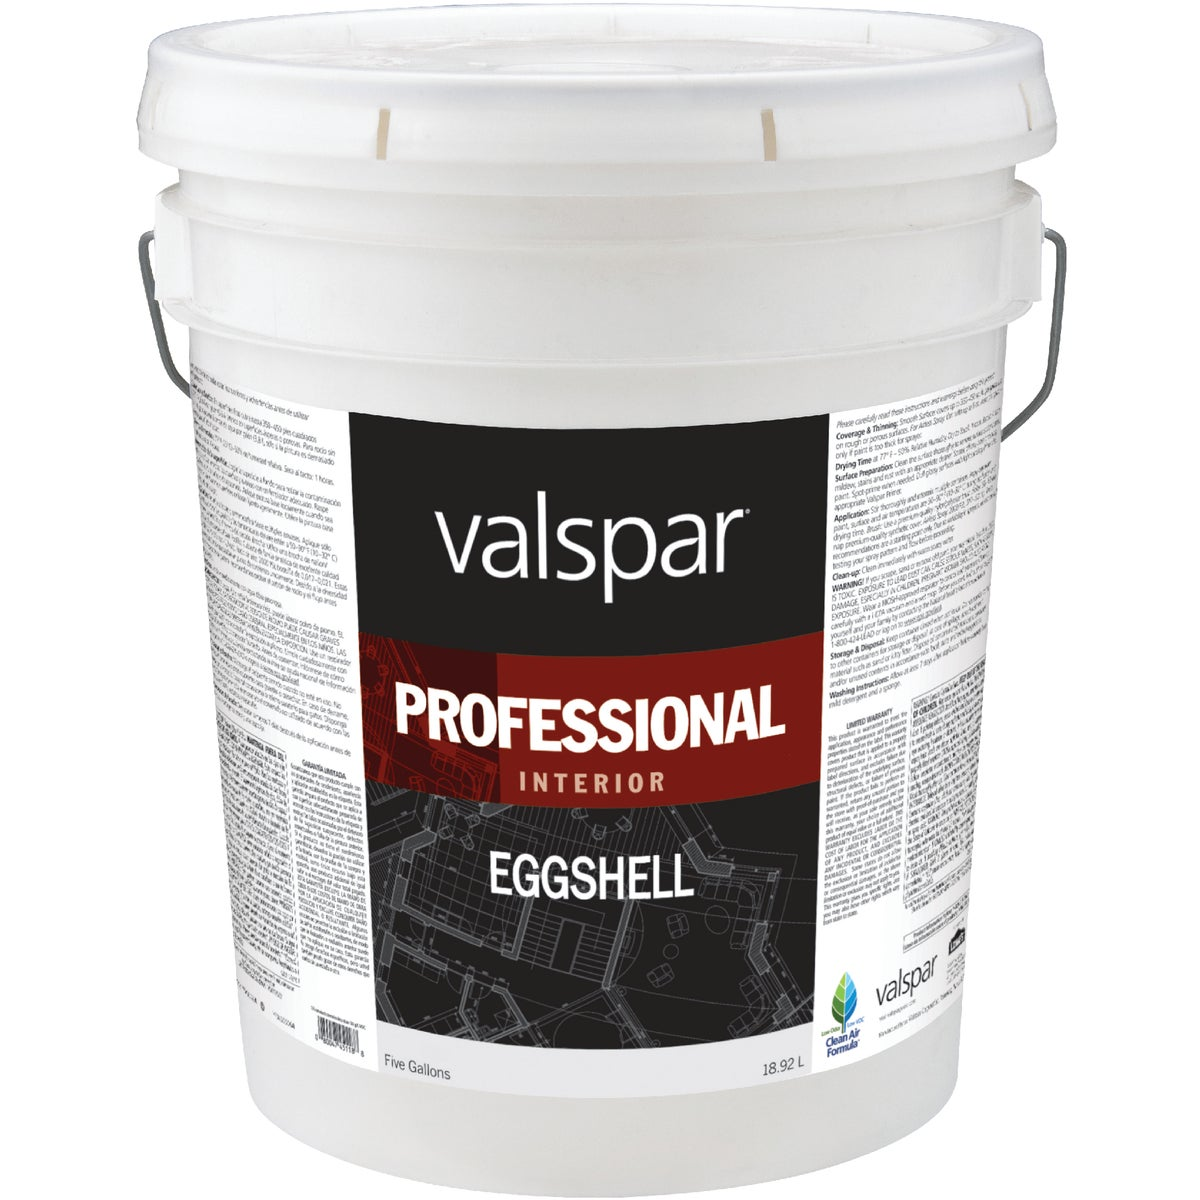 INT EGG MED BASE PAINT - 045.0011812.008 by Valspar Corp